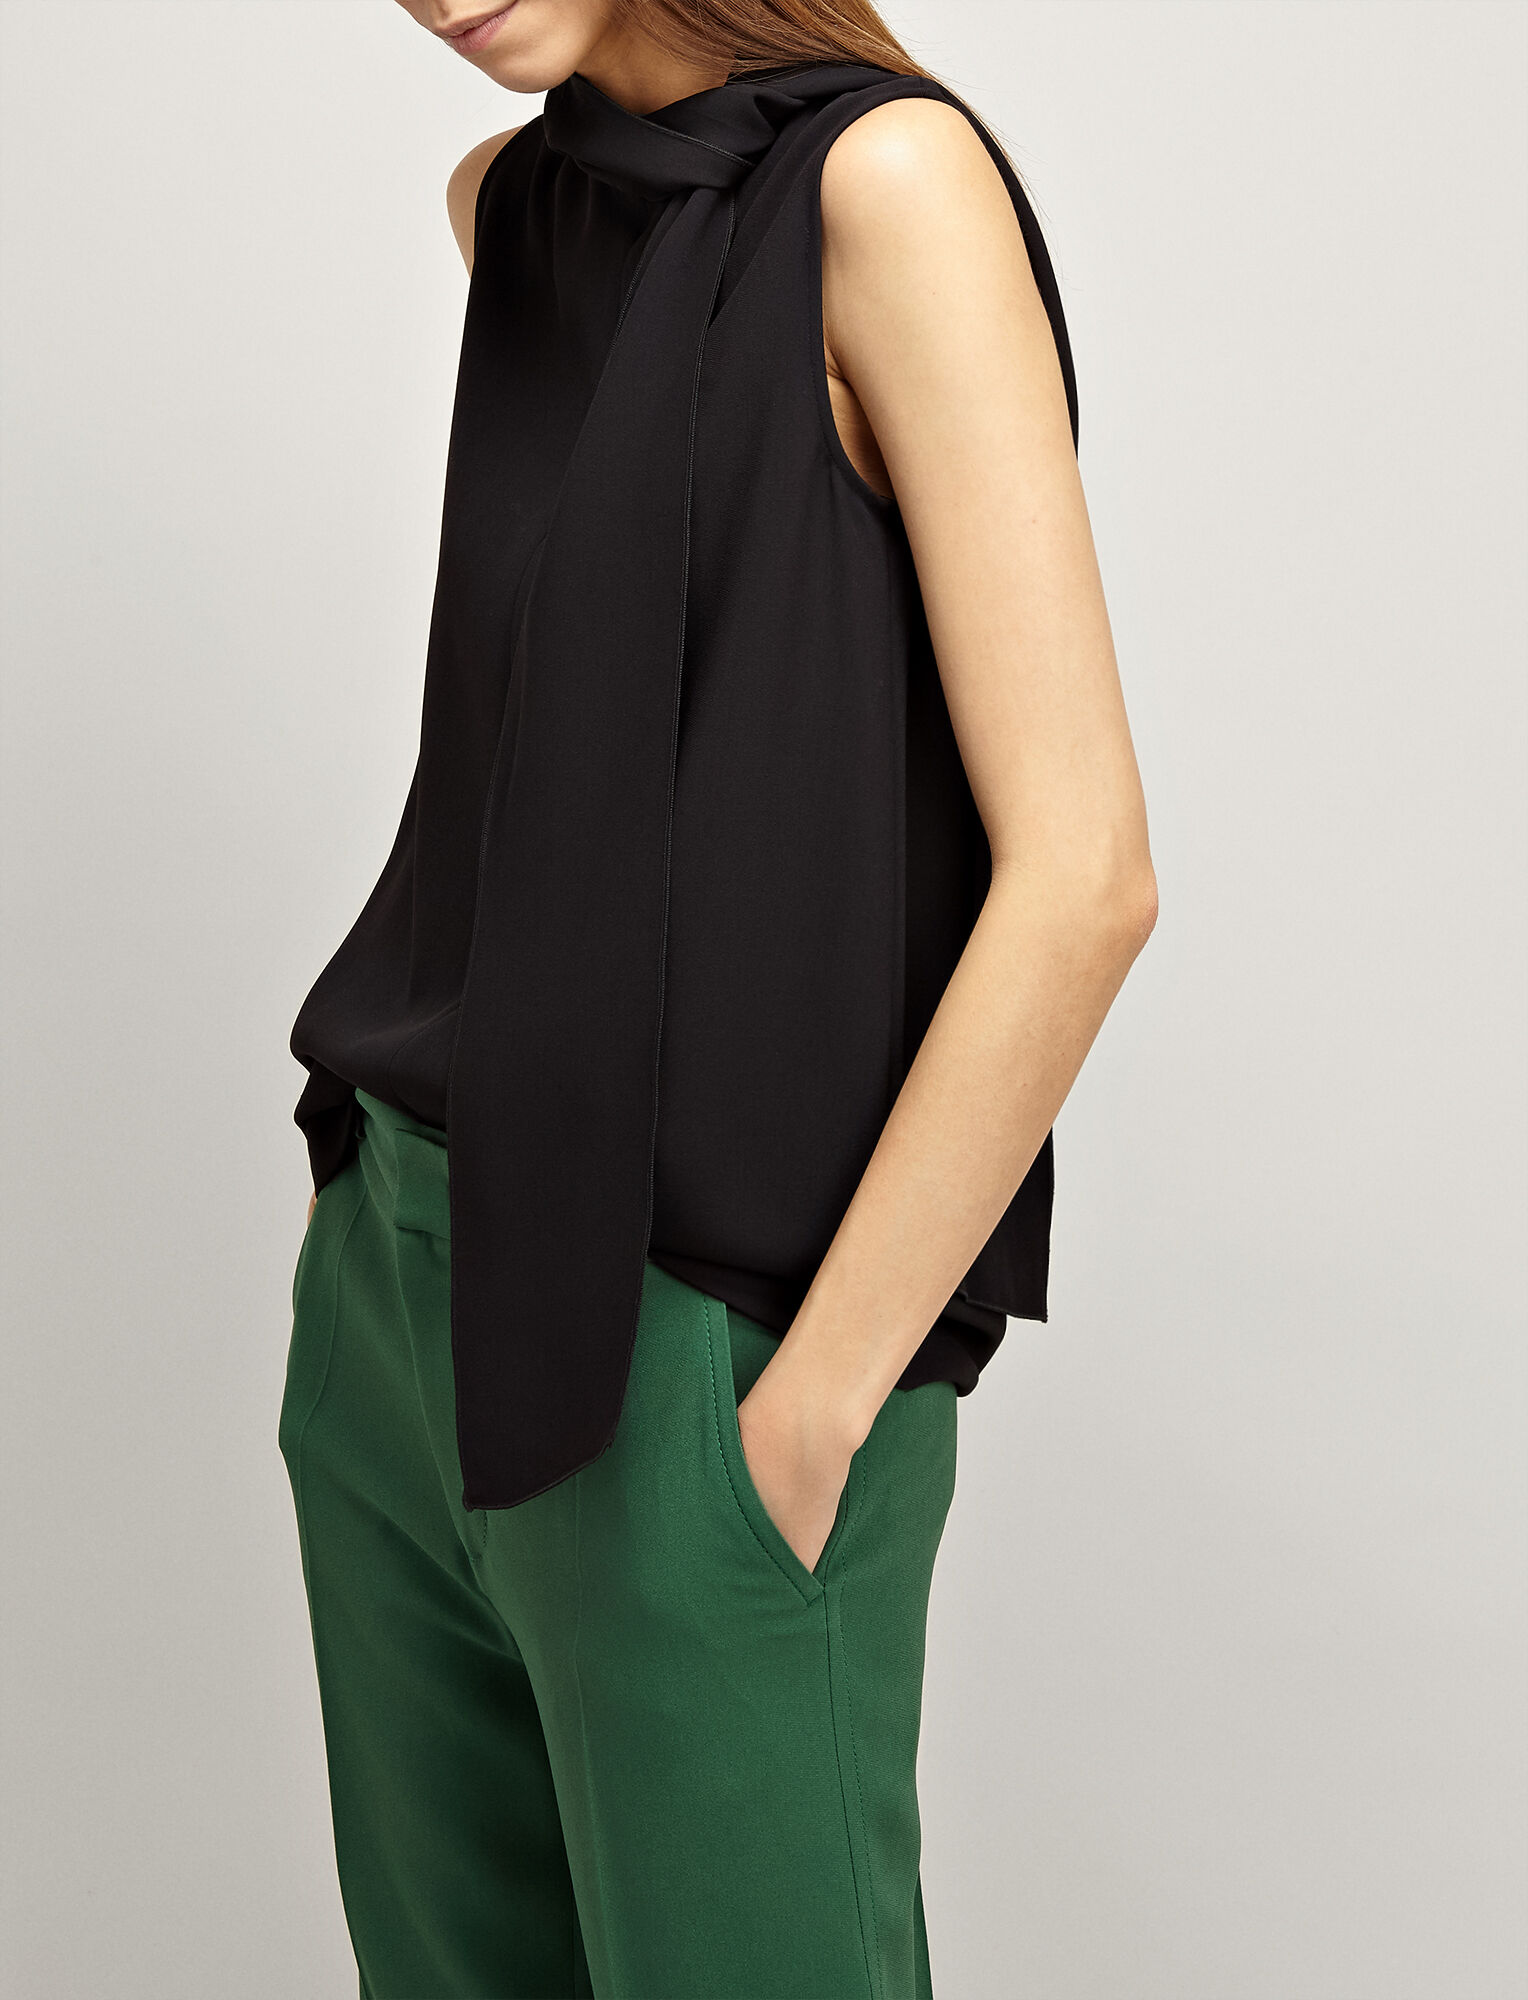 Joseph, Viscose Cady Noon Blouse, in BLACK